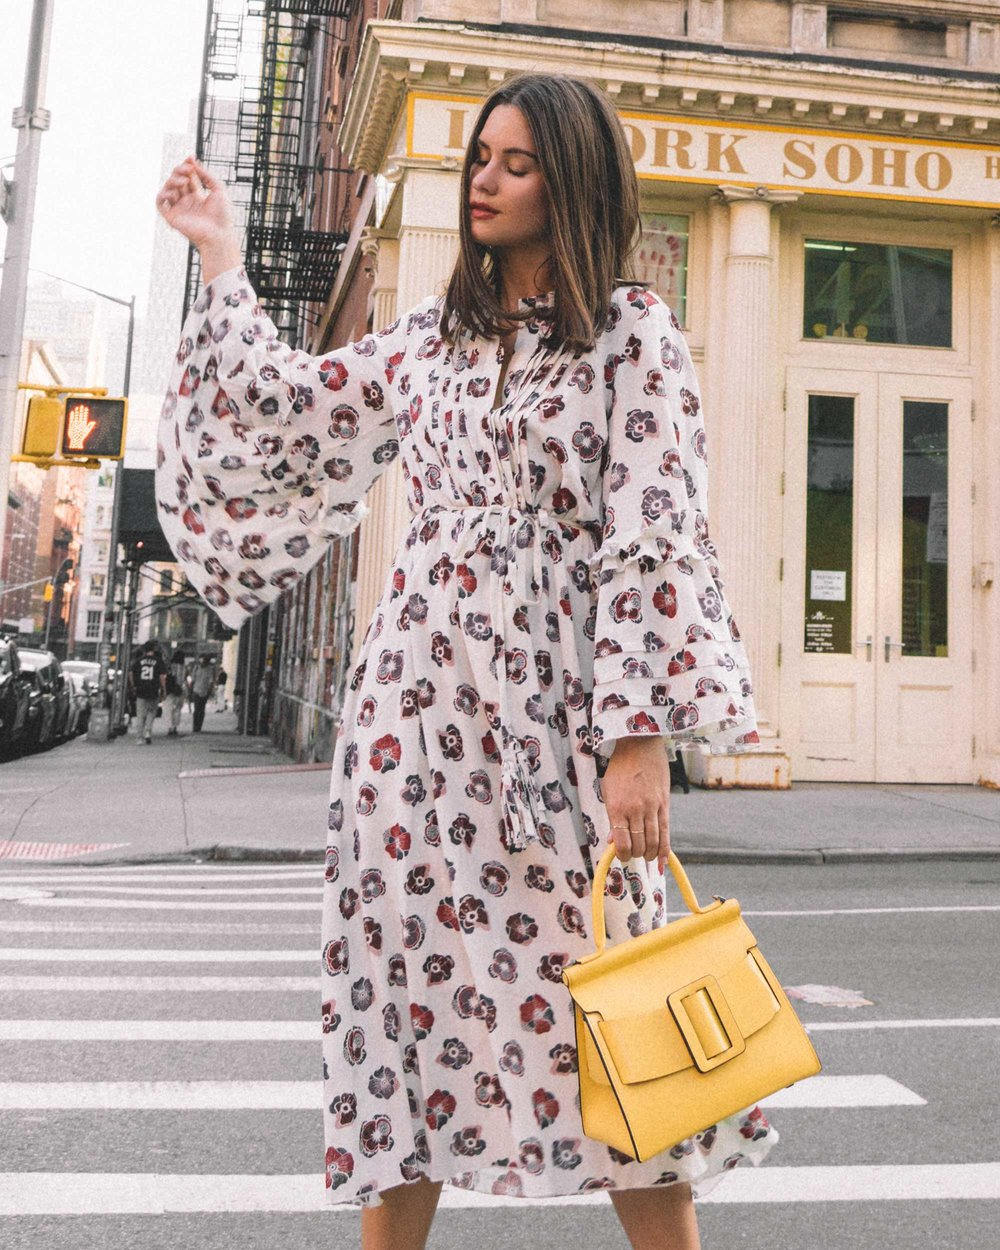 Madewell x Karen Walker Floral Fantasia Ruffled Dress and BOYY Karl 24 Bag soho new york fashion week outfit2.jpg